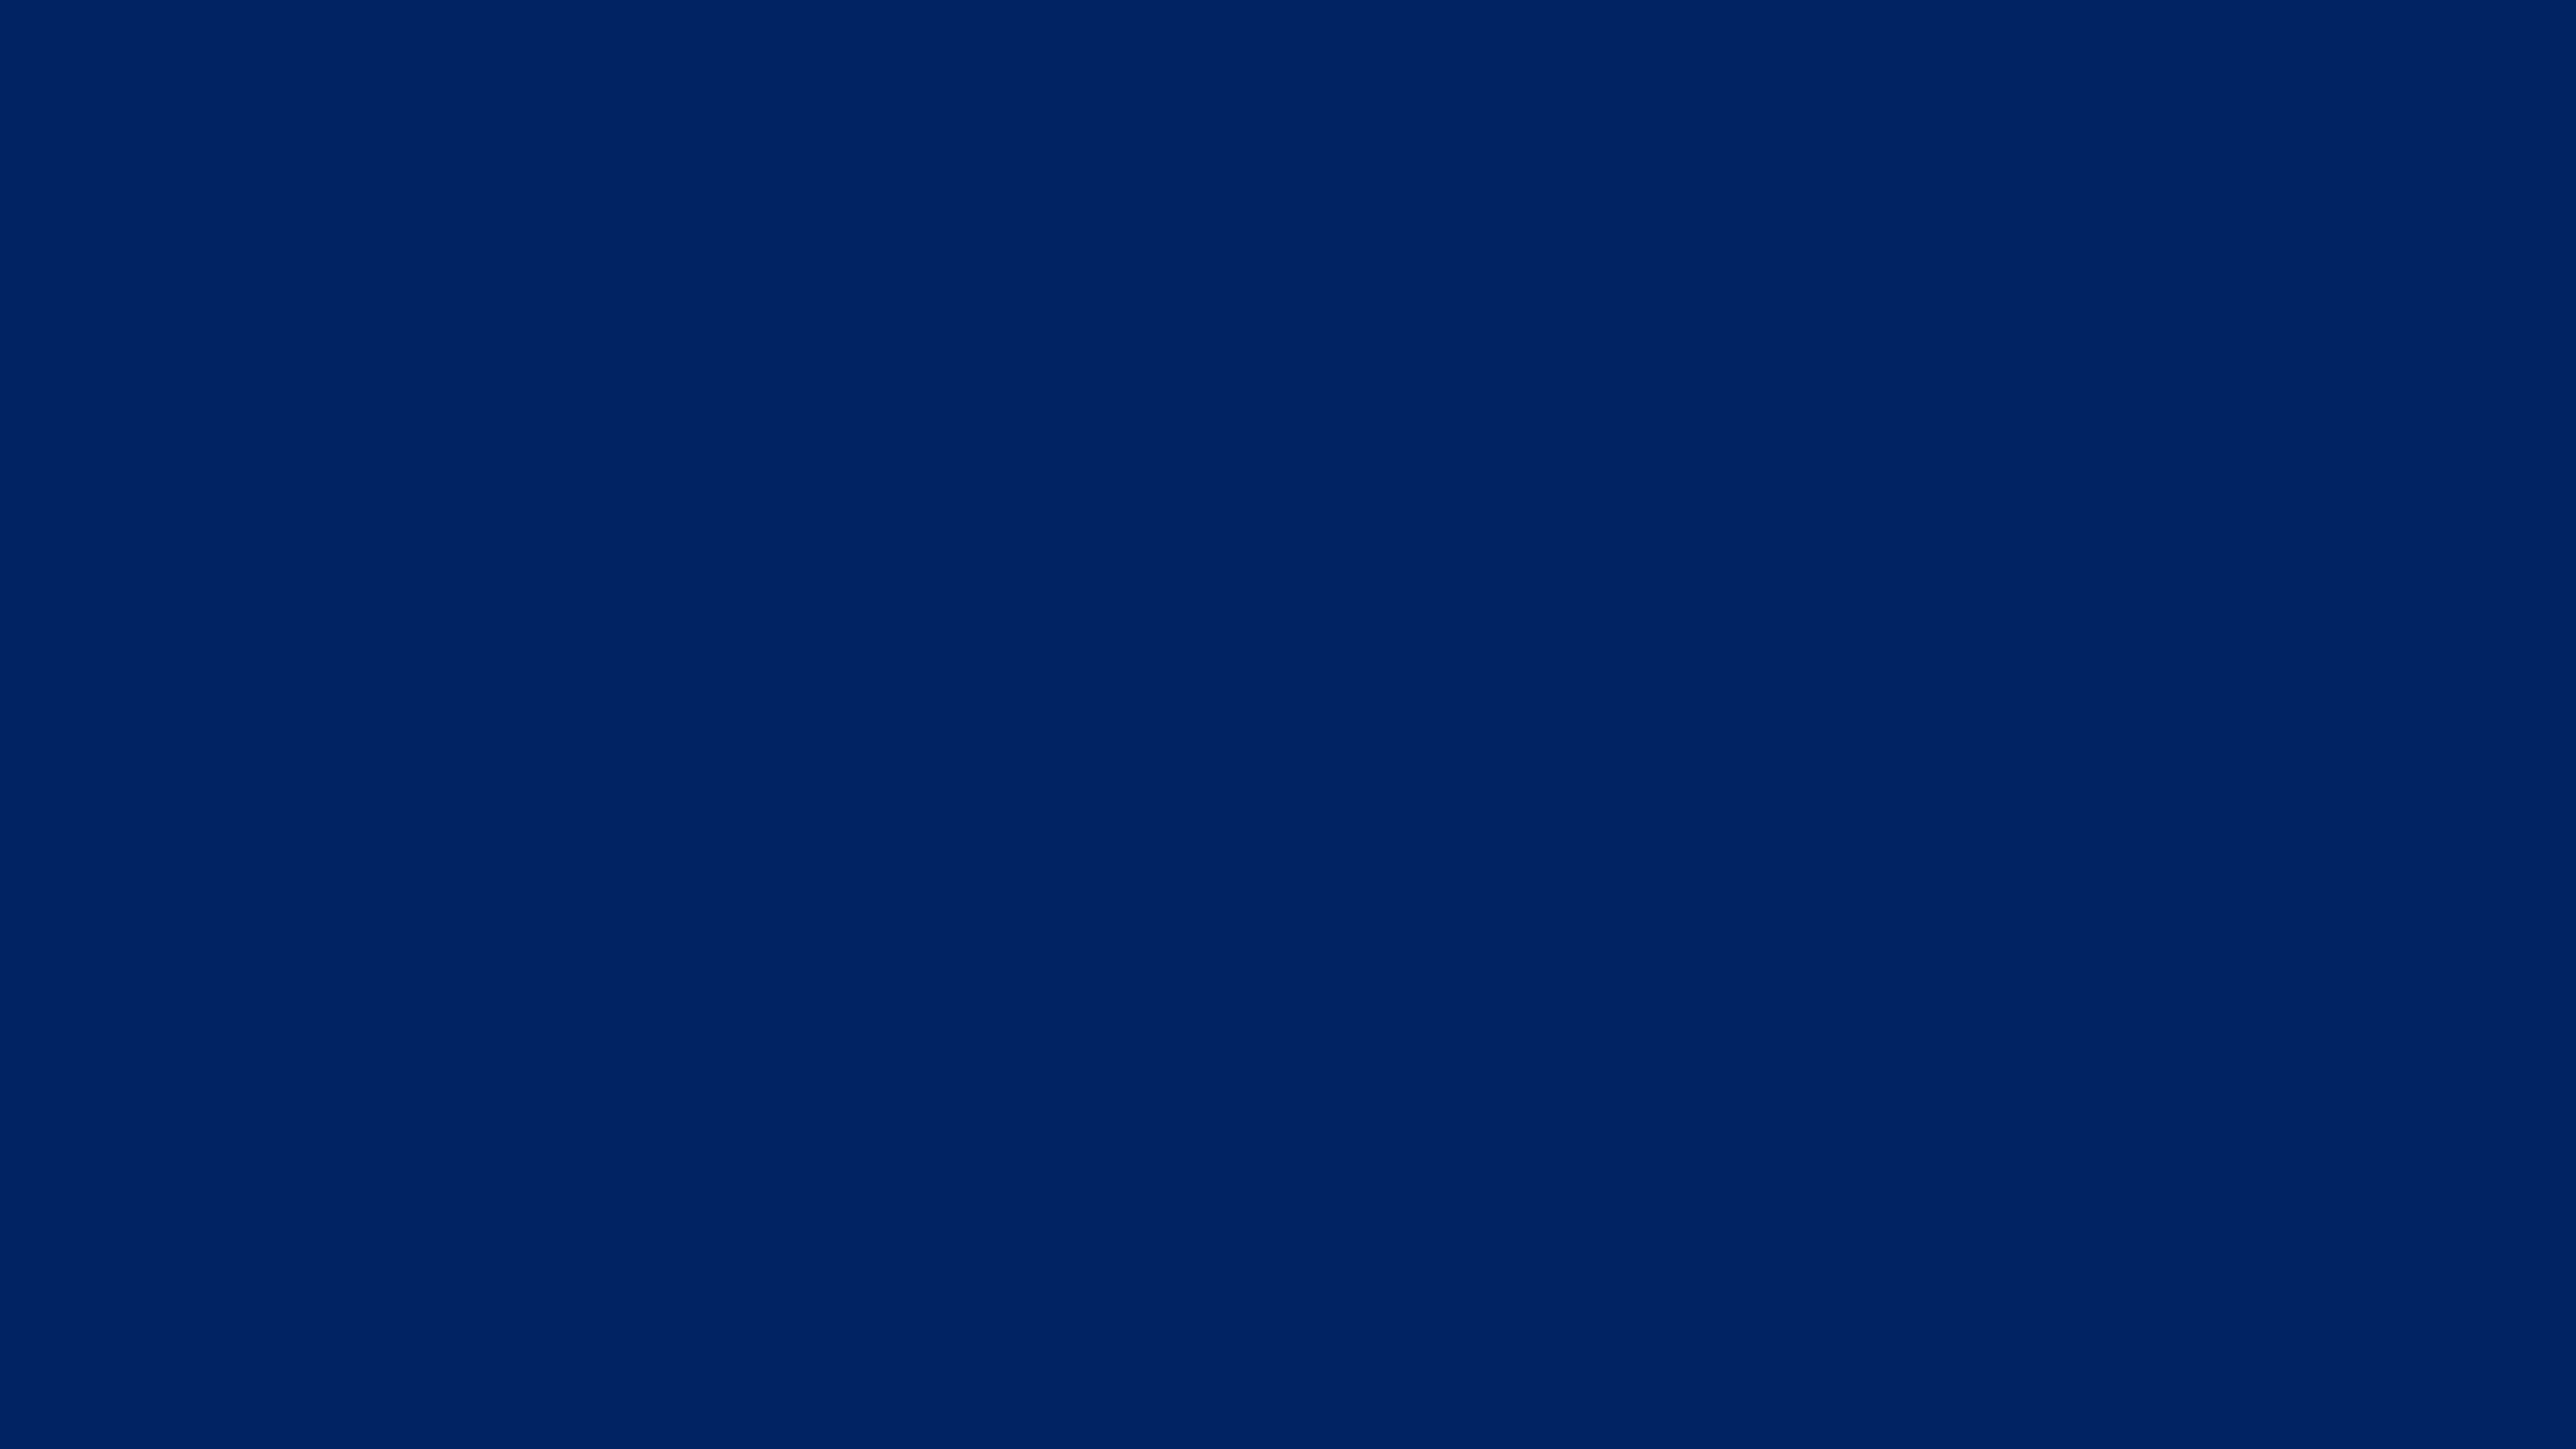 5120x2880 Royal Blue Traditional Solid Color Background